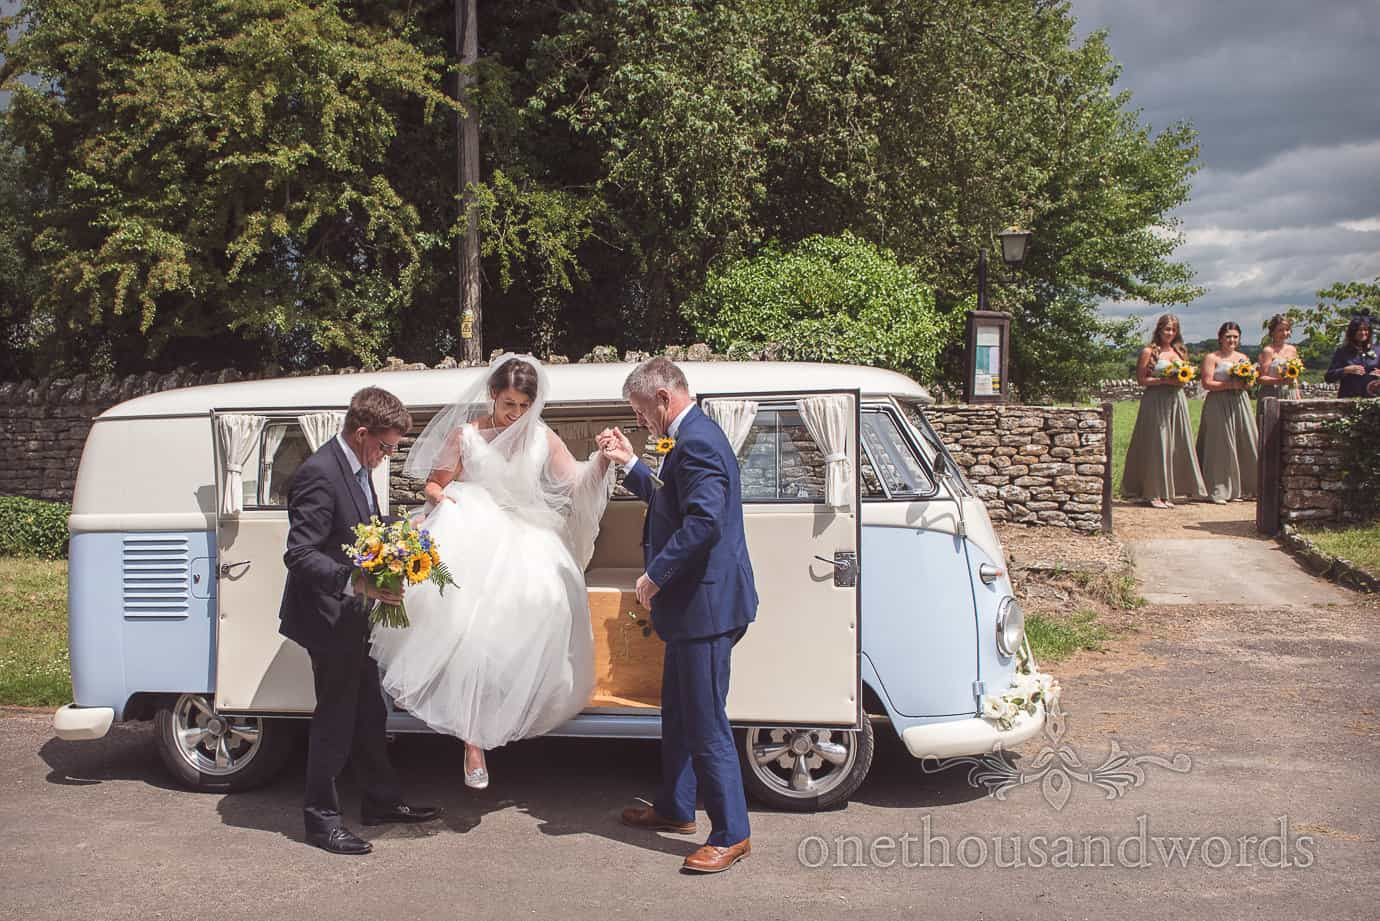 Bride arrives at church in classic VW wedding transport under stormy skies with bright sunshine